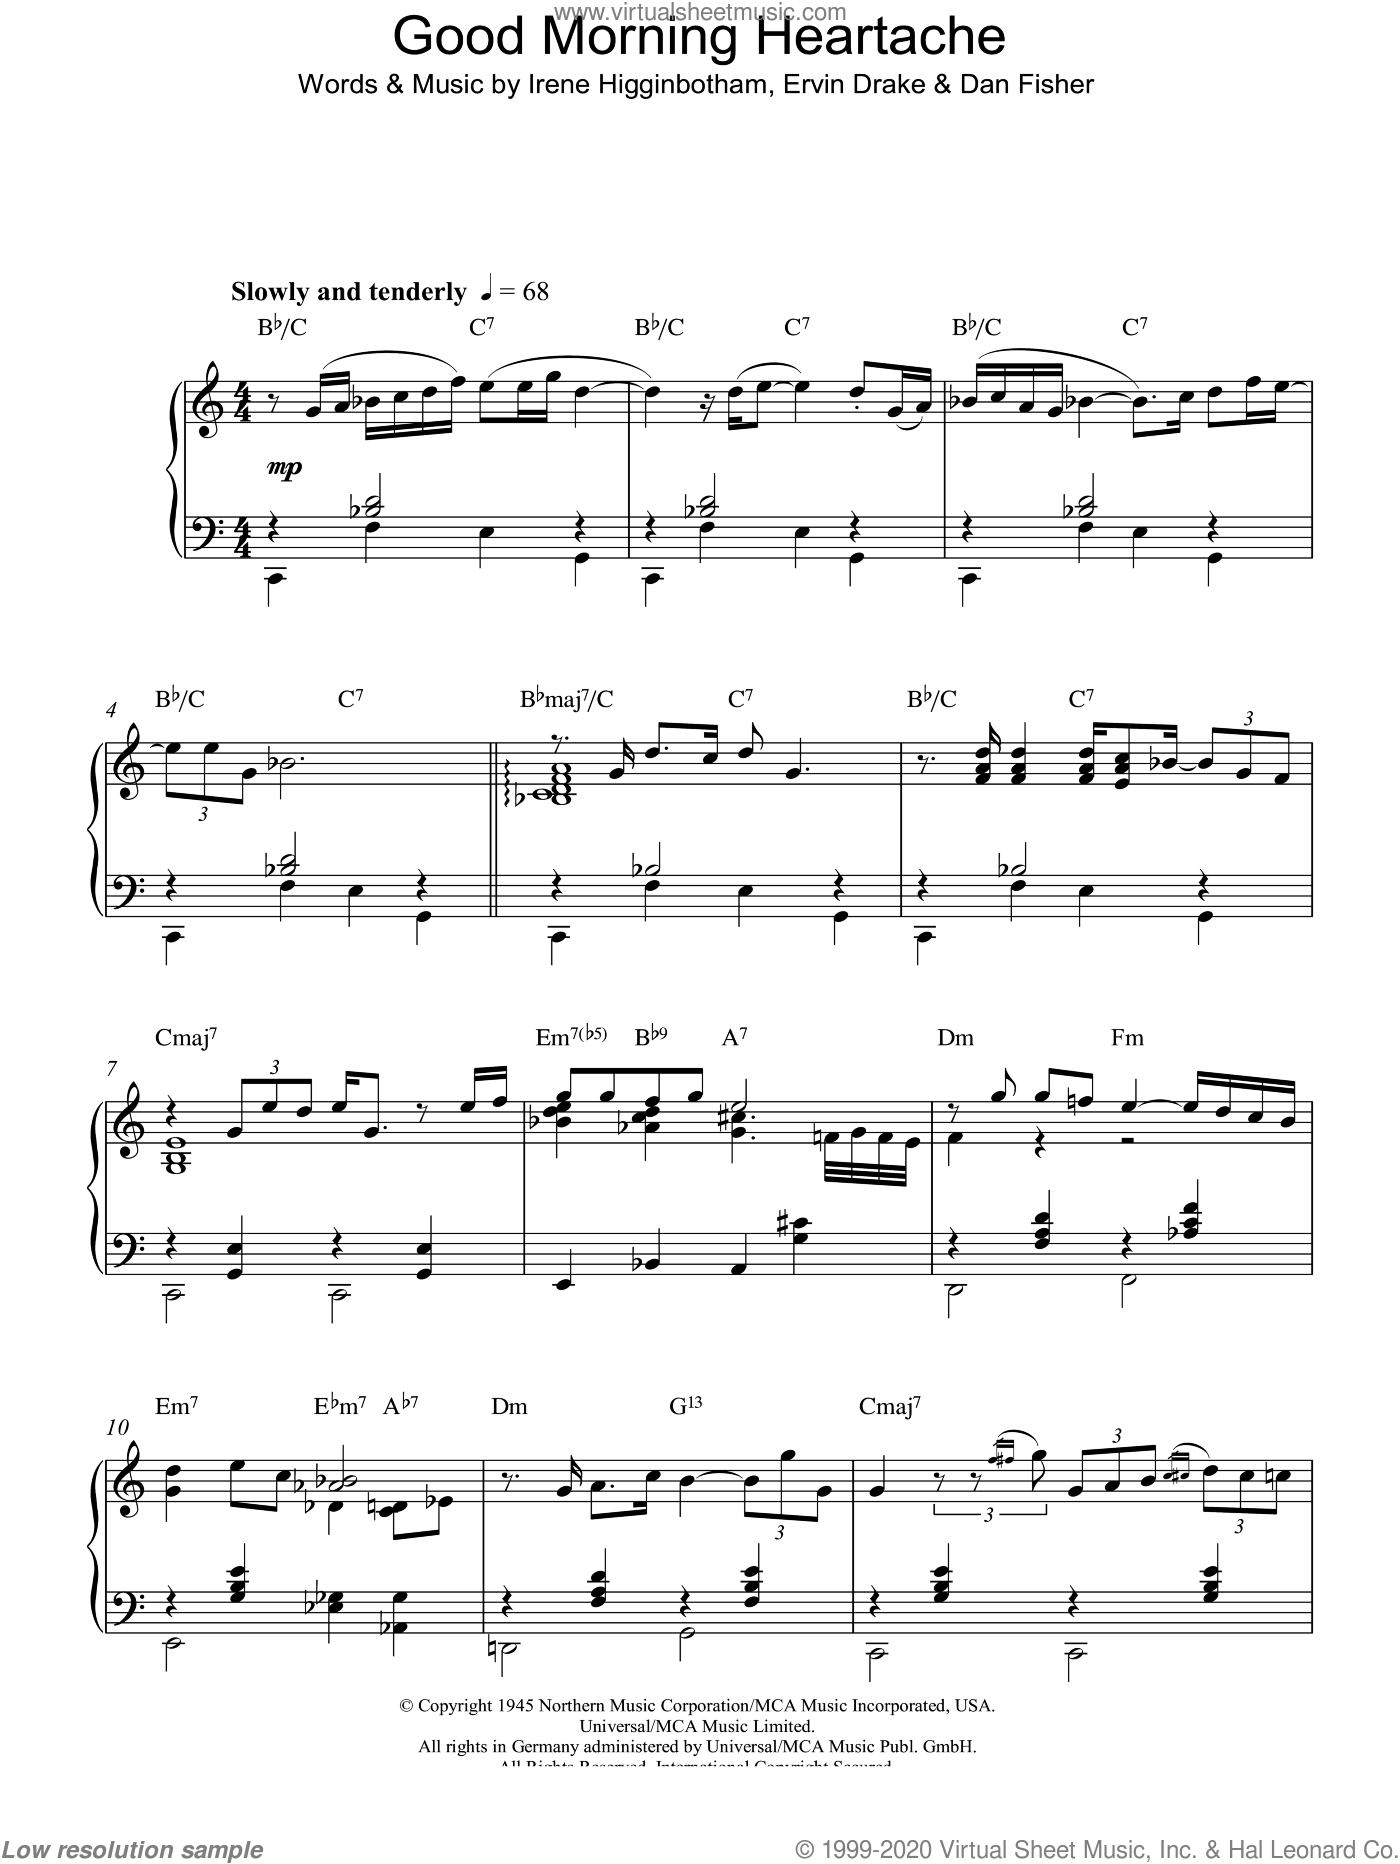 Good Morning Heartache sheet music for piano solo by Billie Holiday, Dan Fisher, Ervin Drake and Irene Higginbotham. Score Image Preview.